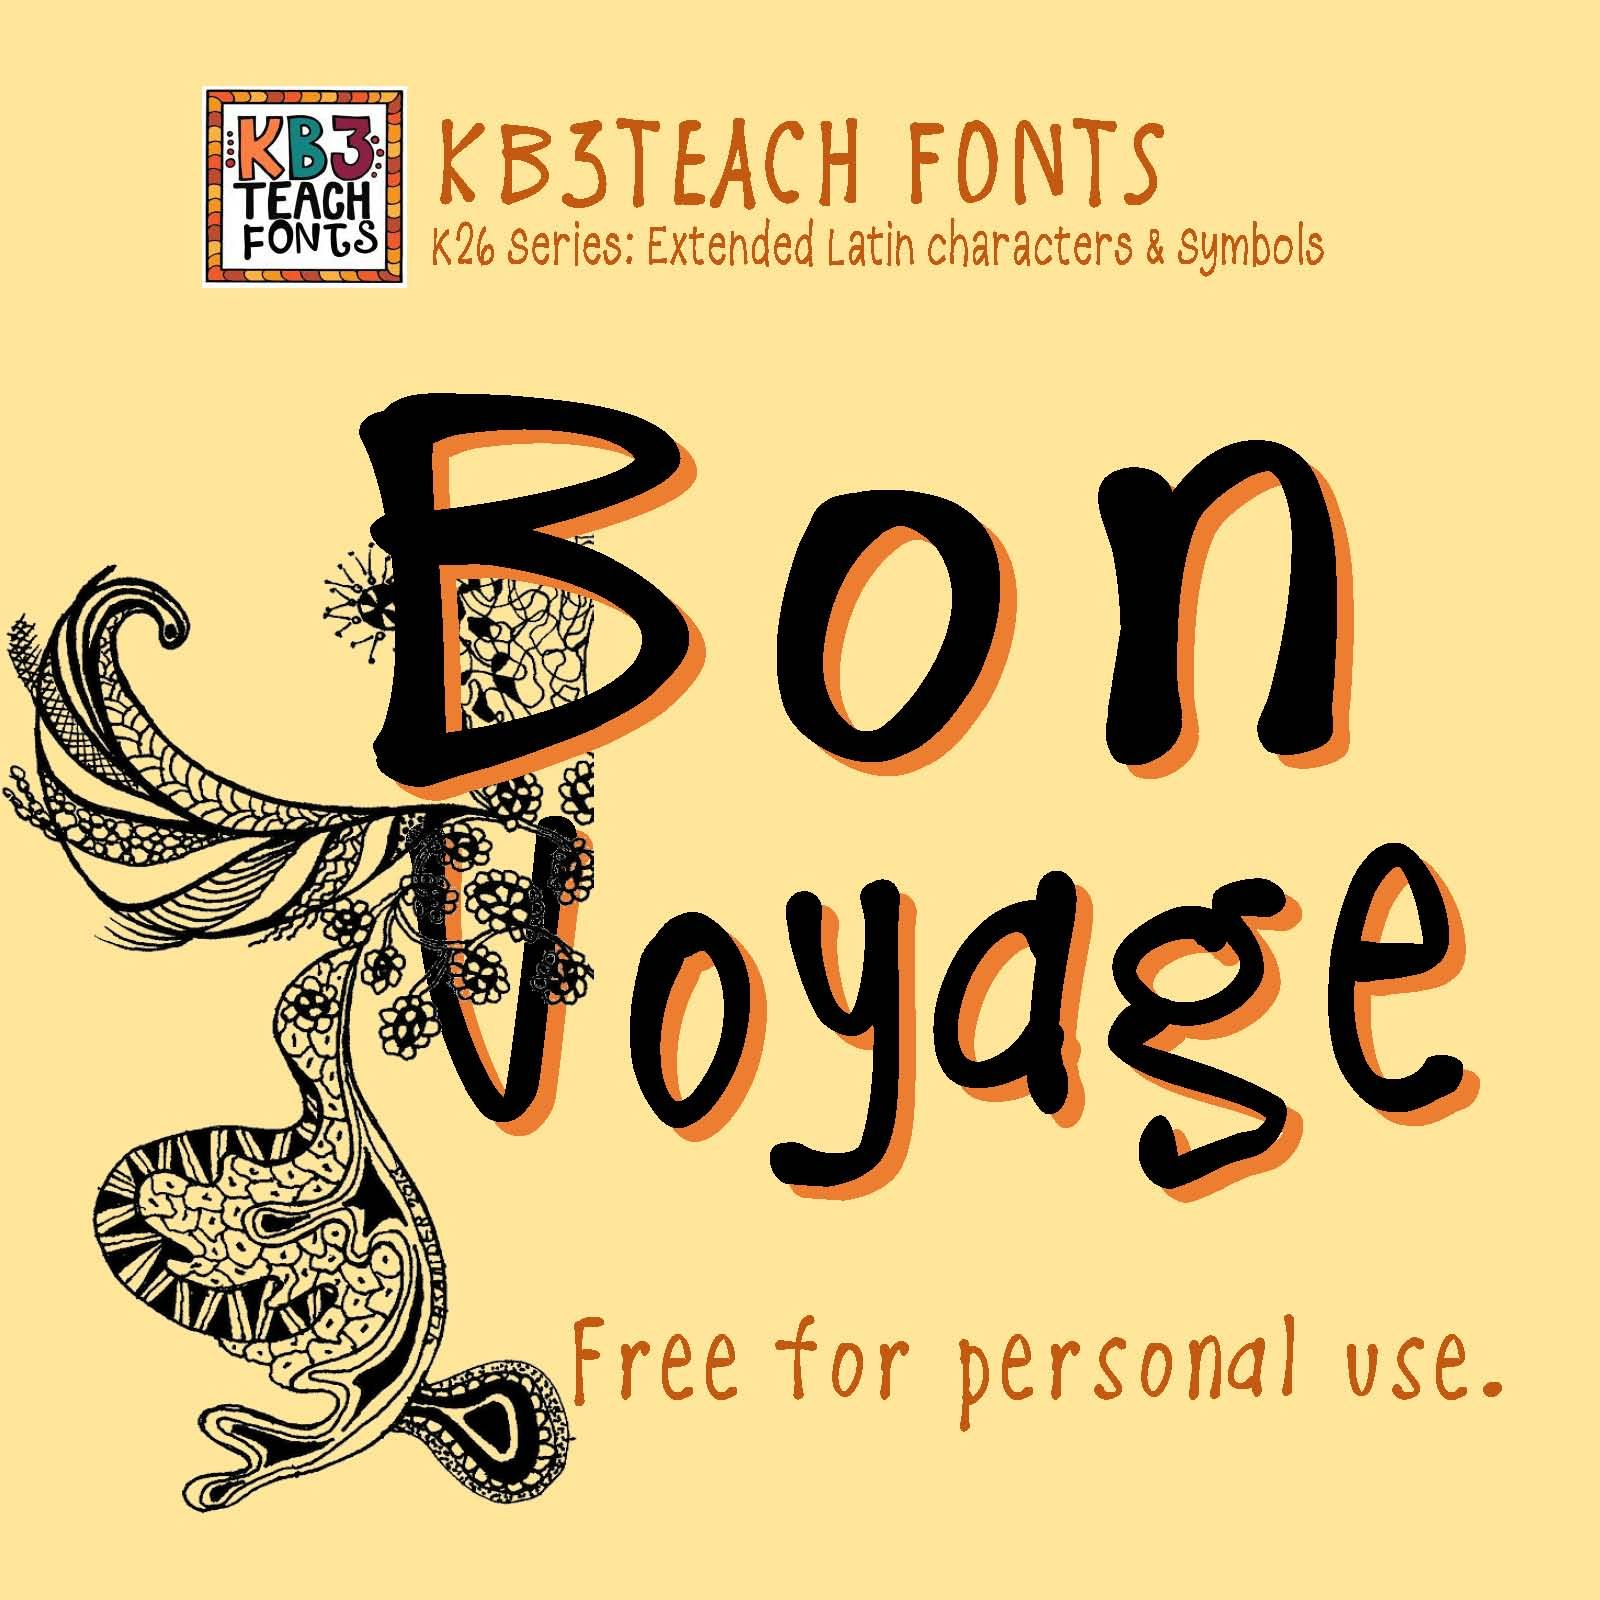 Free Fonts Kb3 Casual Friday Personal Use K26 Series